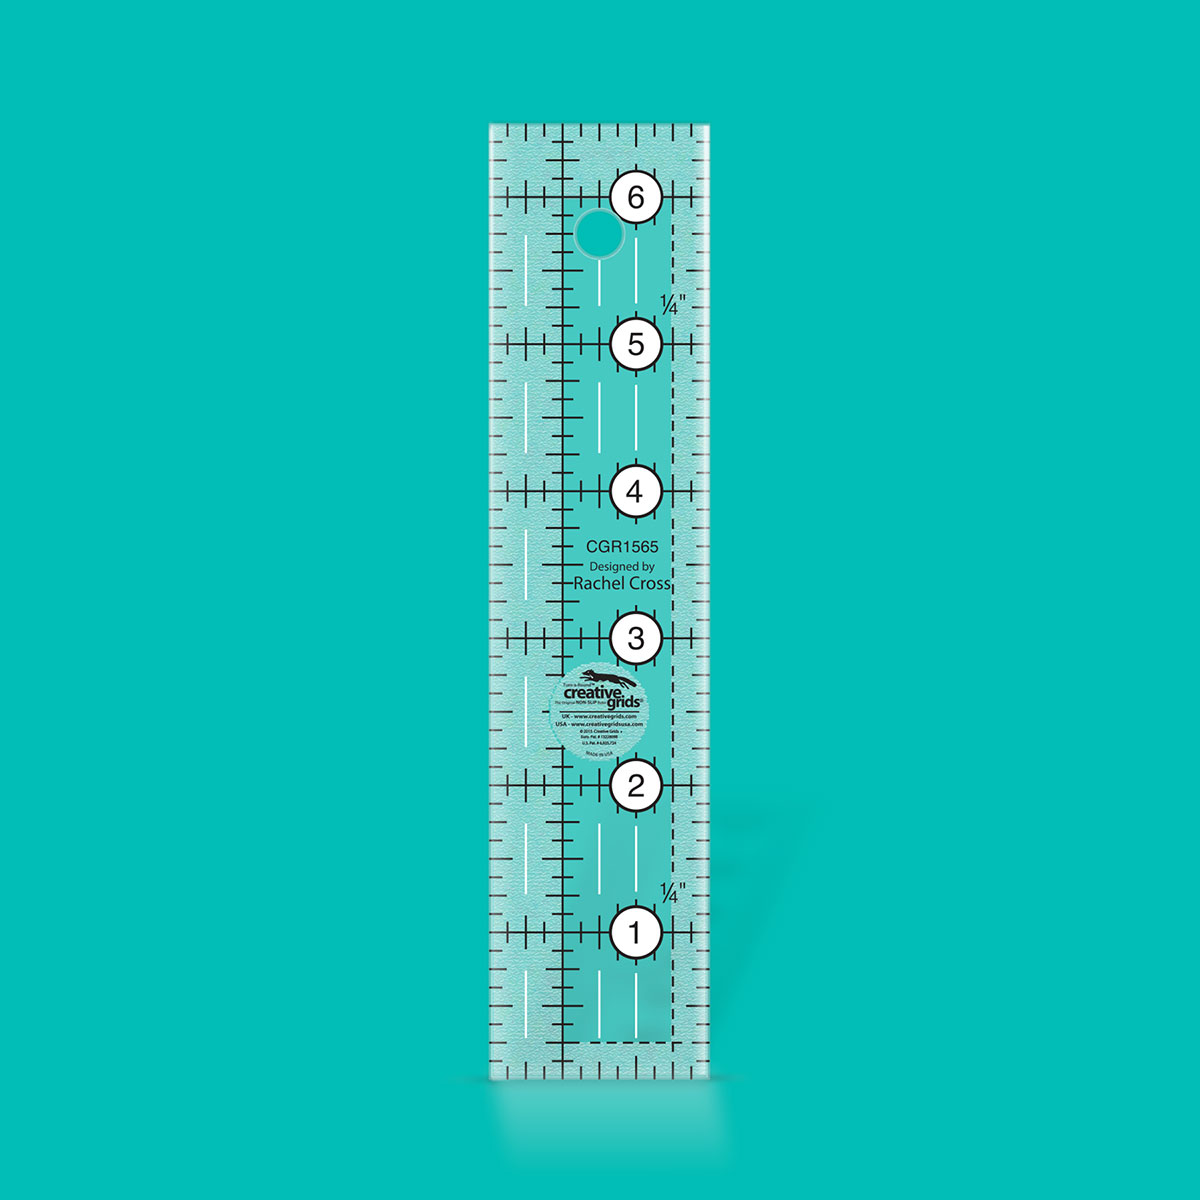 Creative Grids 1.5 x 6.5 Turn-a-Round Ruler